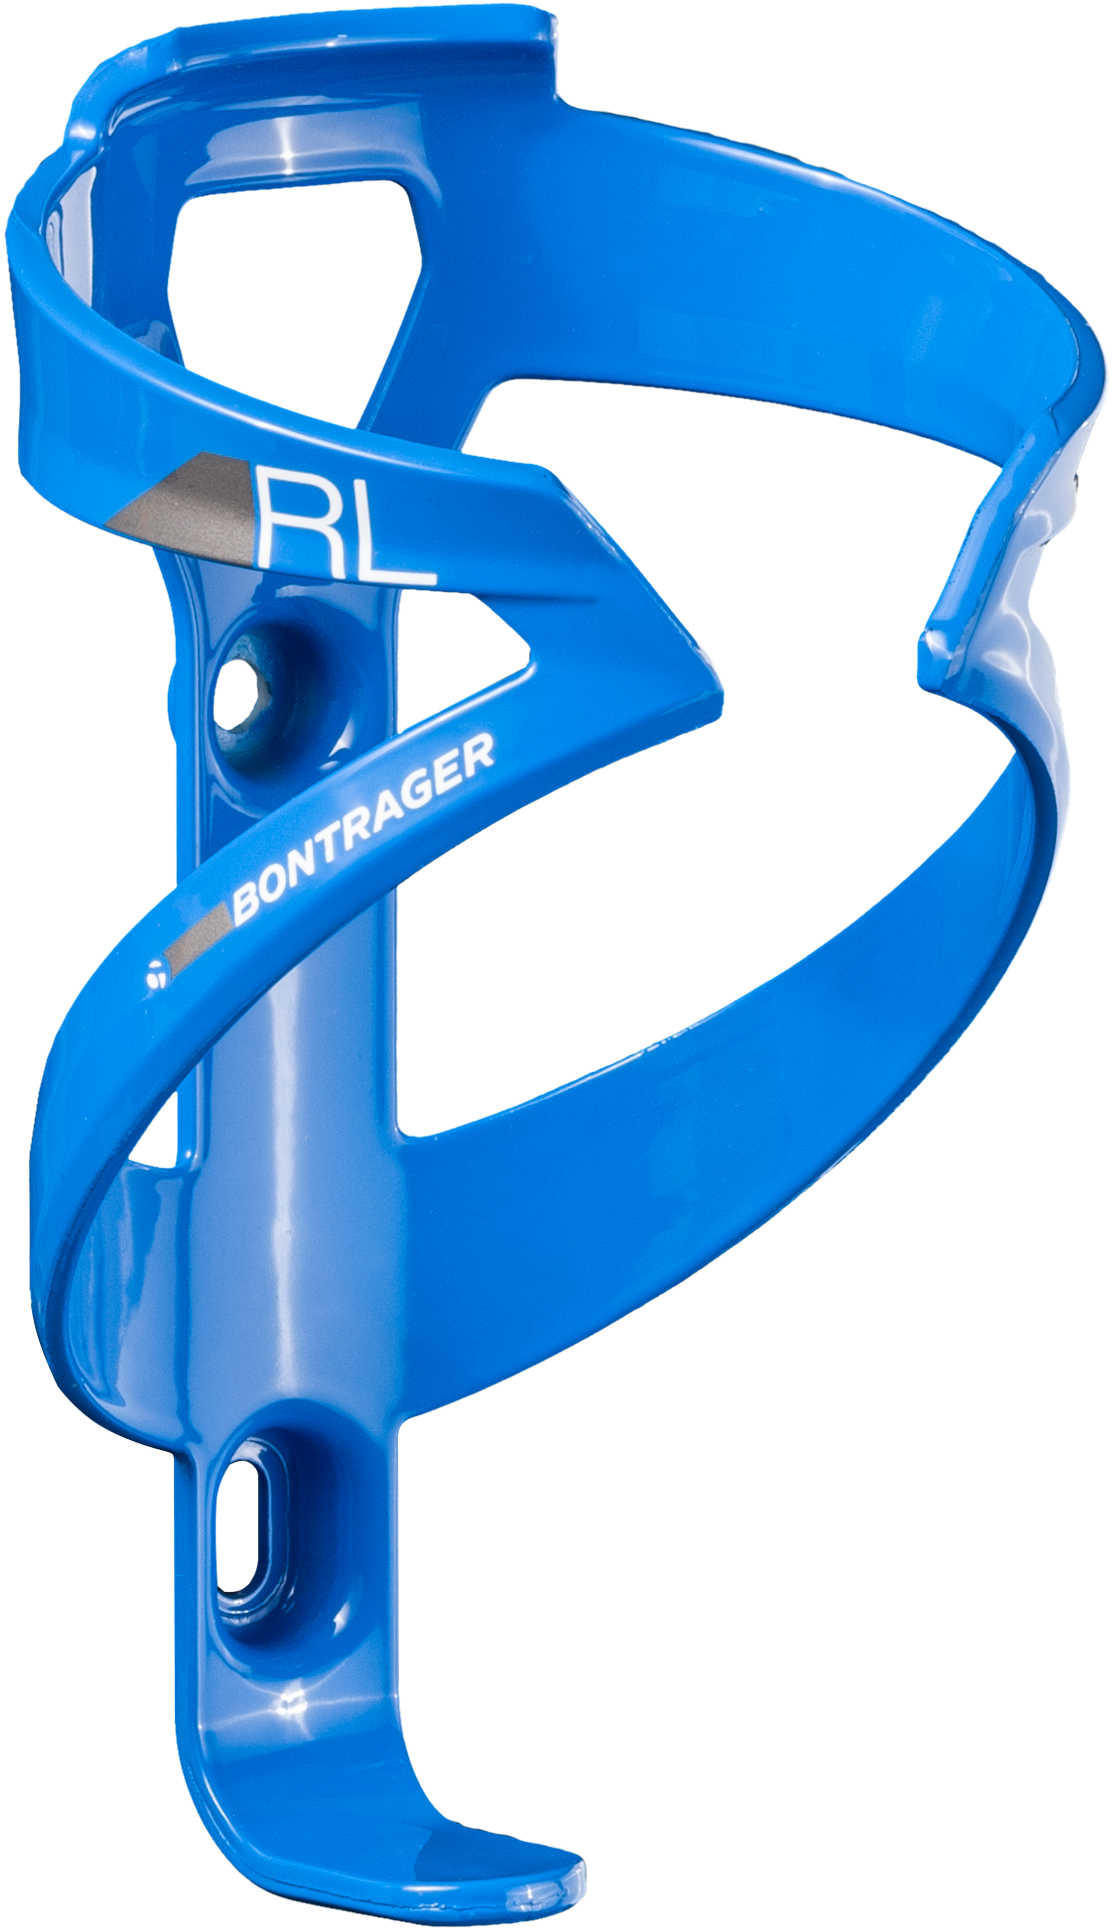 Bontrager Rl Bottle Cage Waterloo Blue